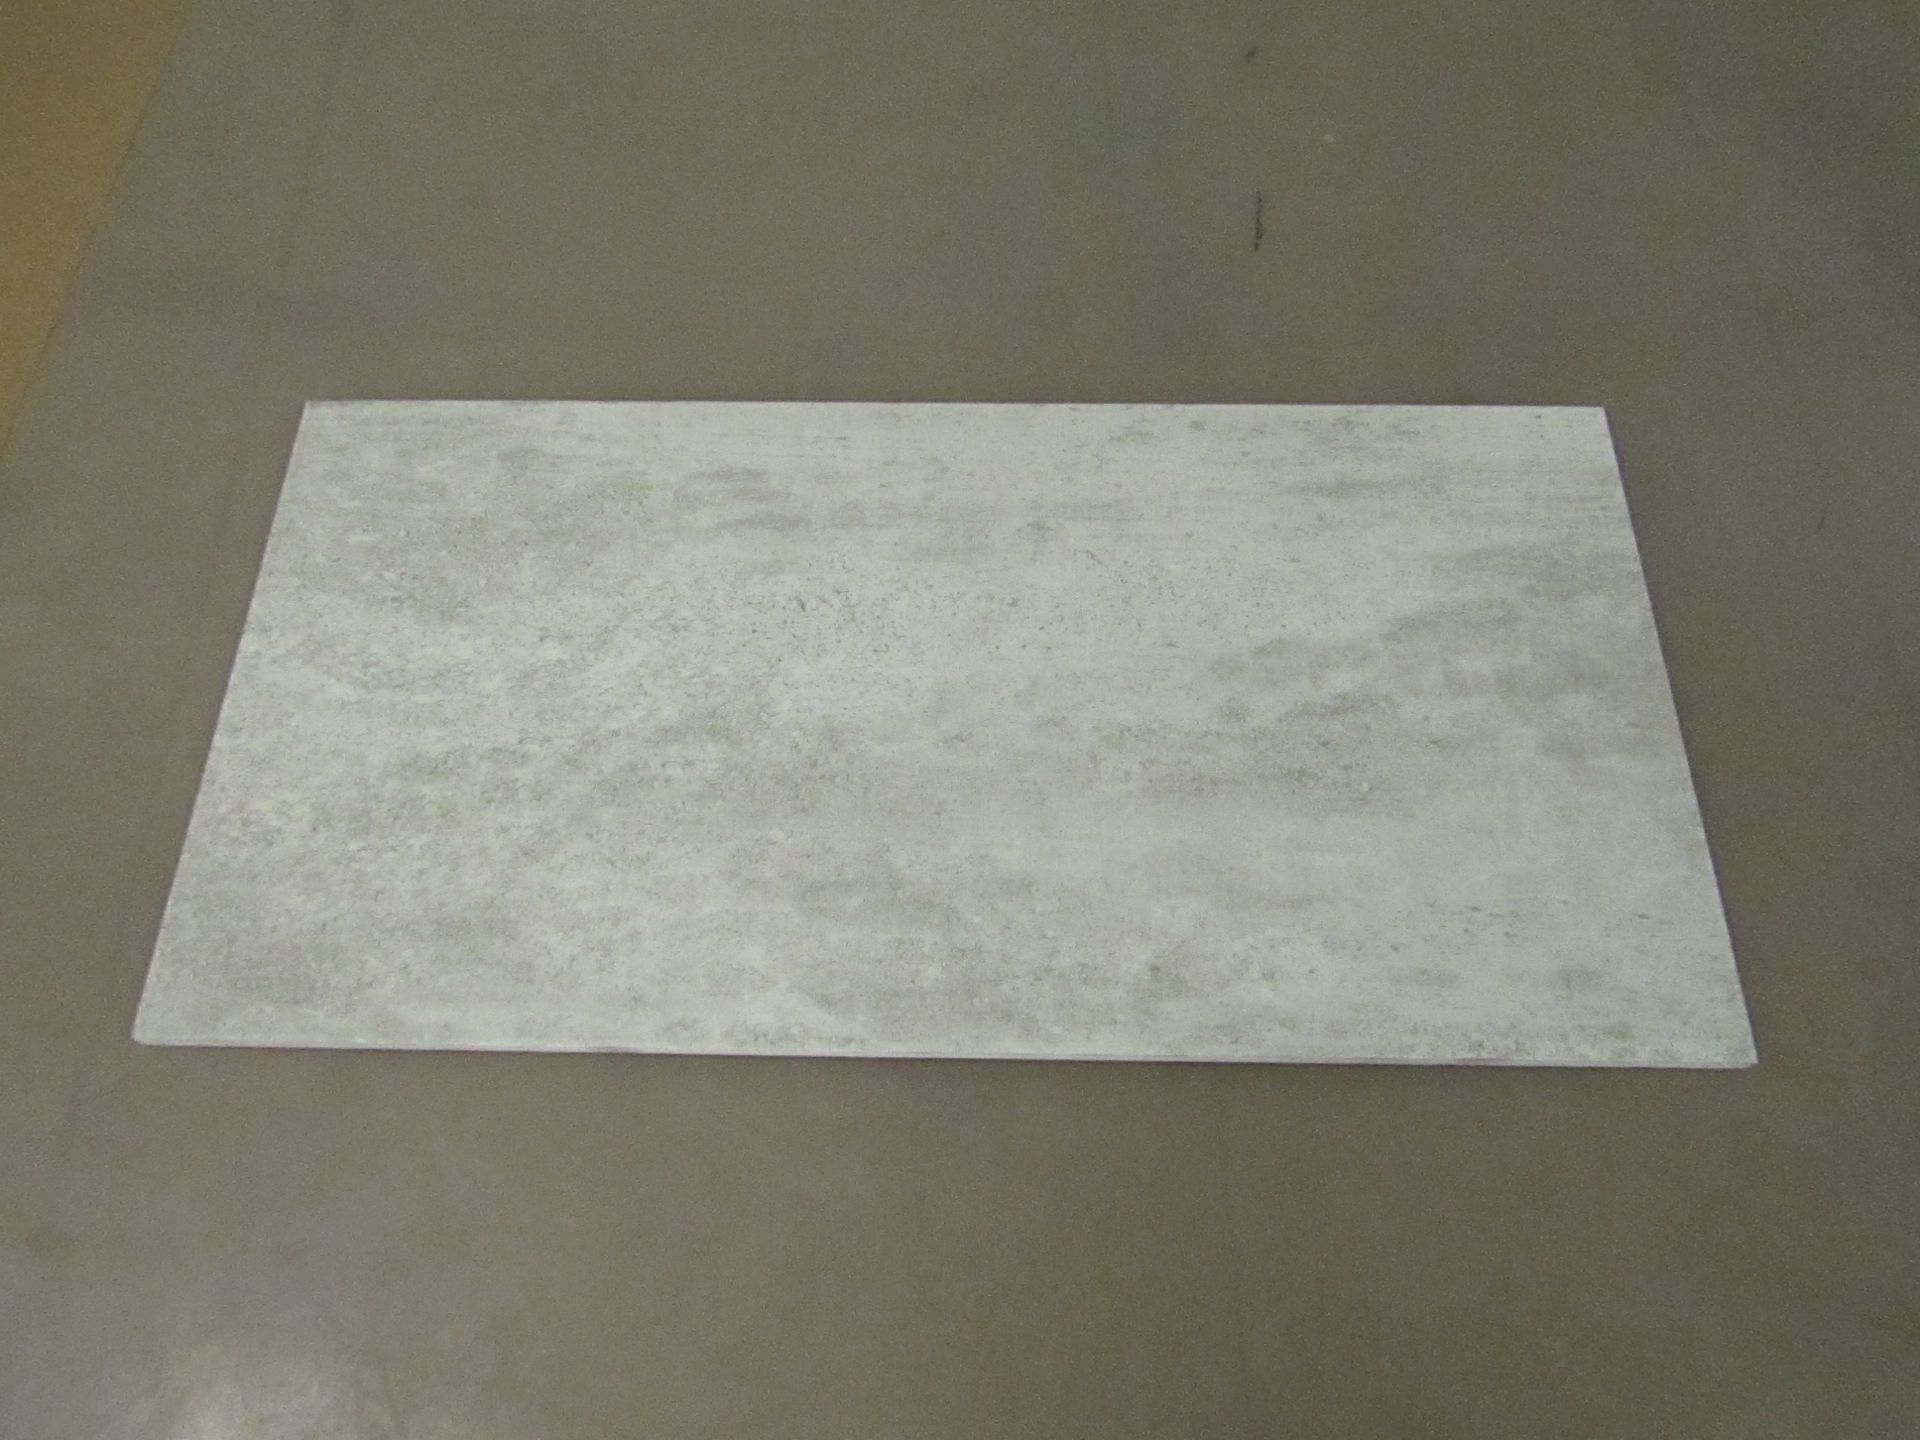 Pallet of 40x Packs of 5 Ashlar Crafted Grey Textured 300x600 wall and Floor Tiles By Johnsons, New, - Image 2 of 2